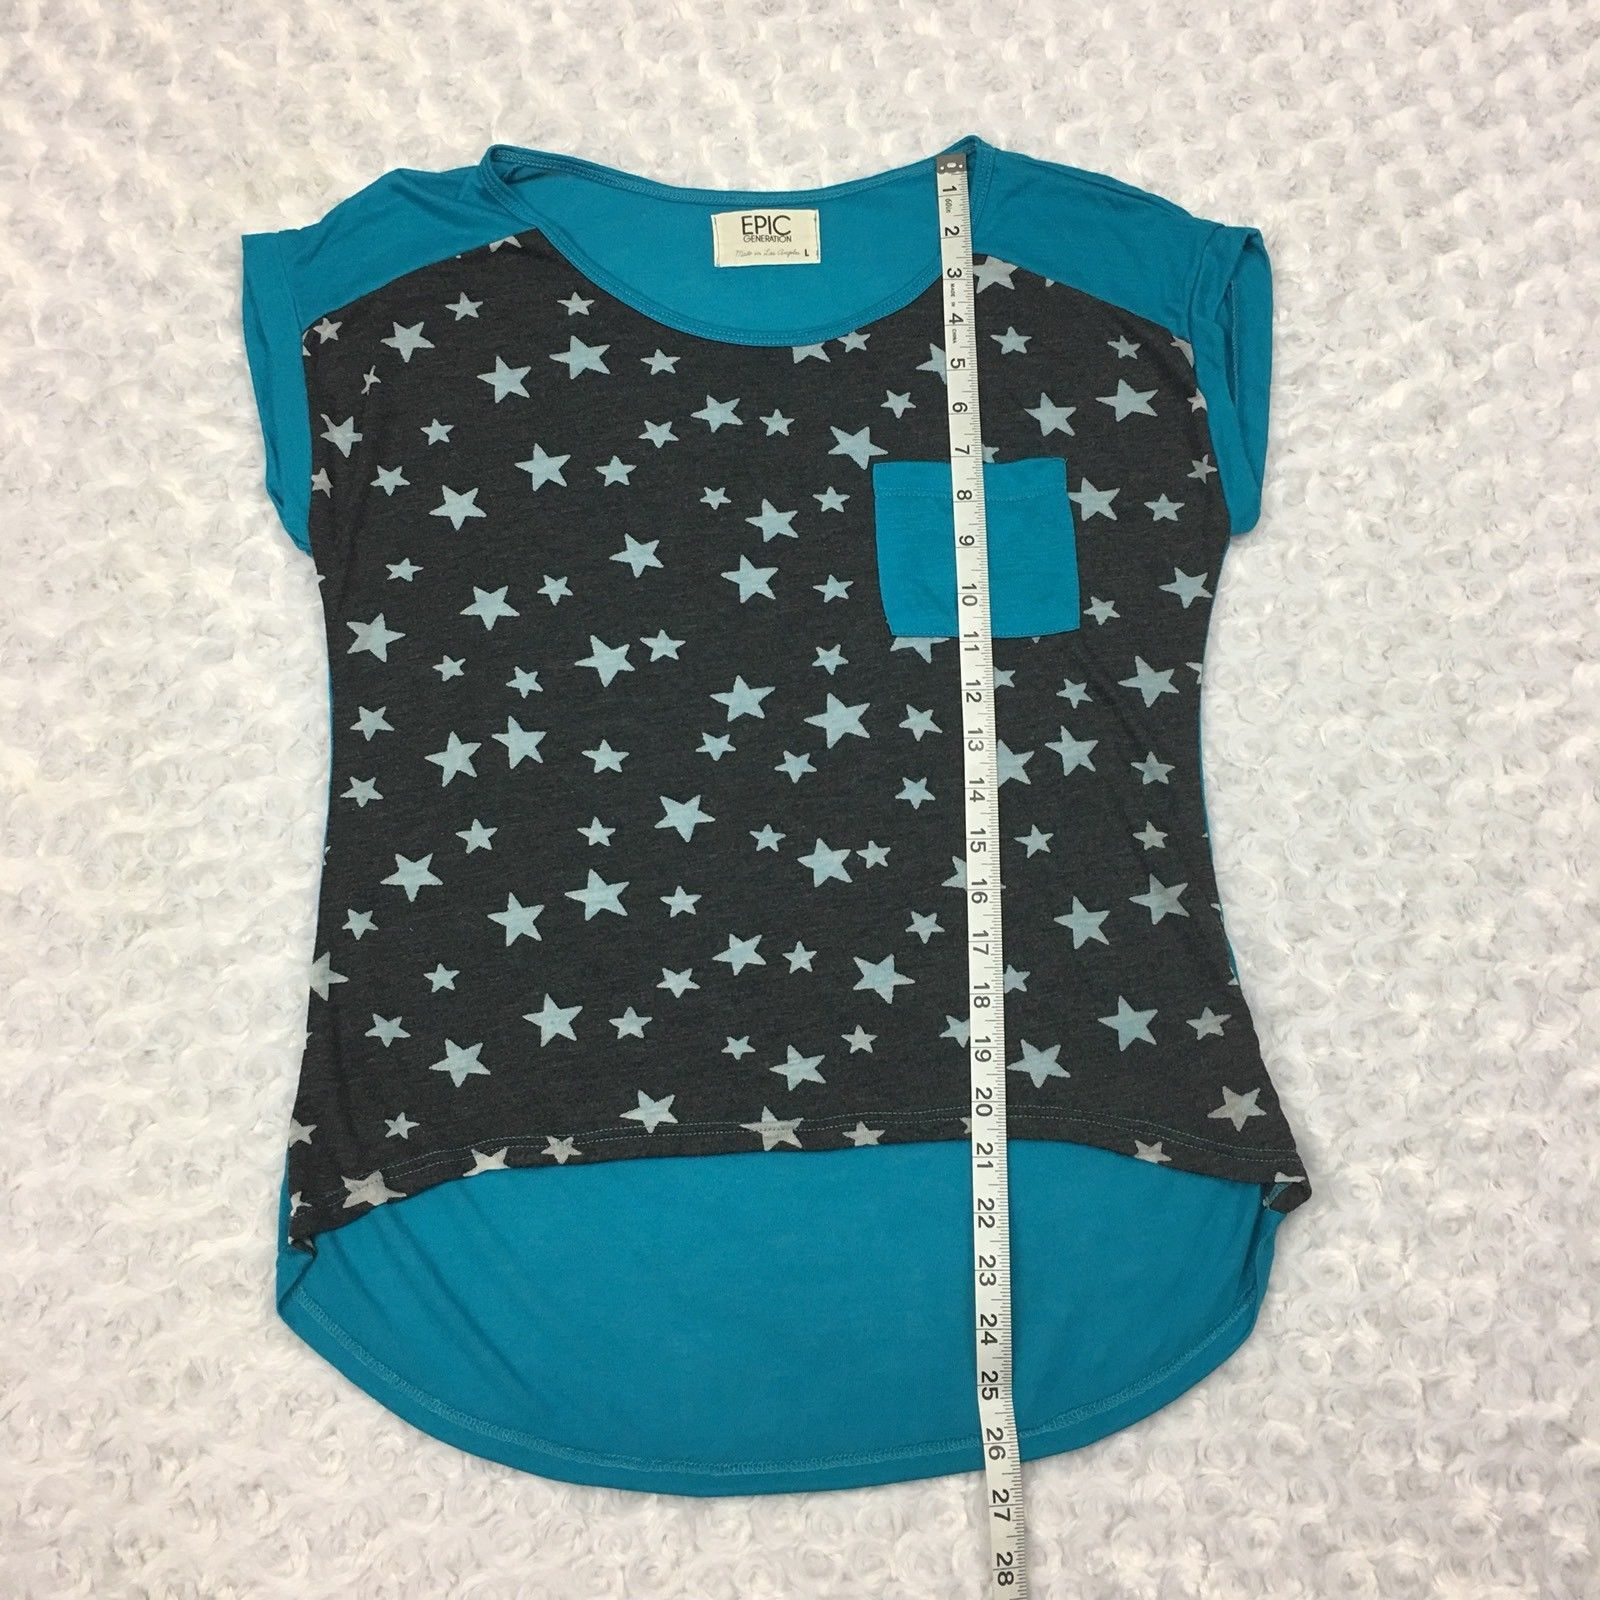 Juniors Thin Cropped Belly Shirt Cap sleeves Teal Gray with White Stars on Front